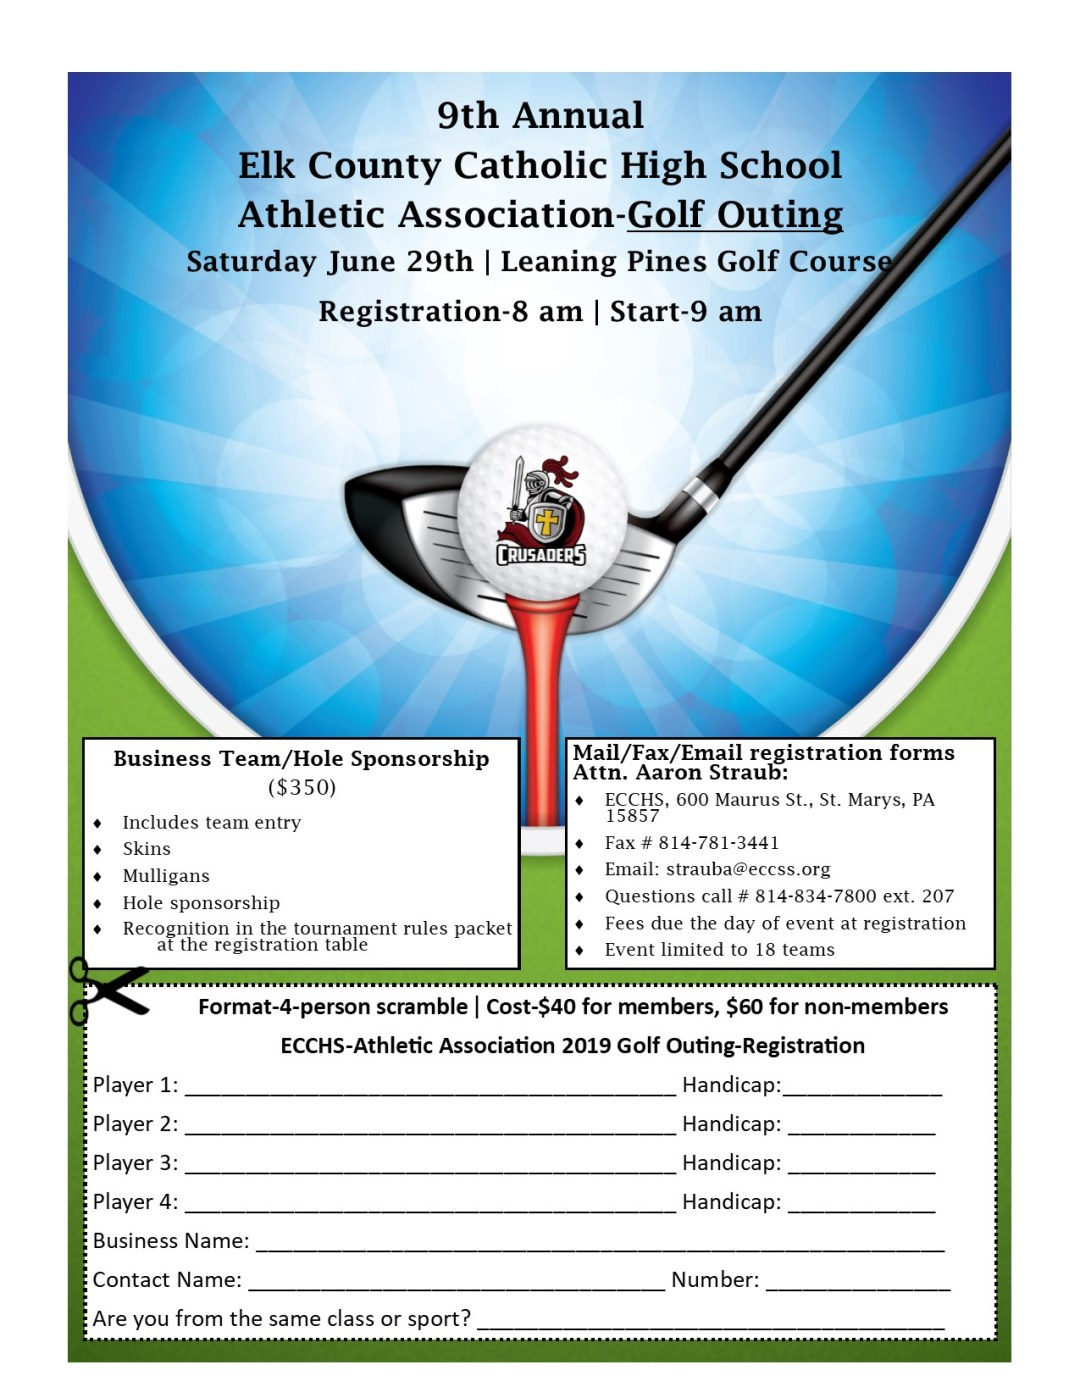 9th Annual-ECCHS Athletic Association Golf Outing